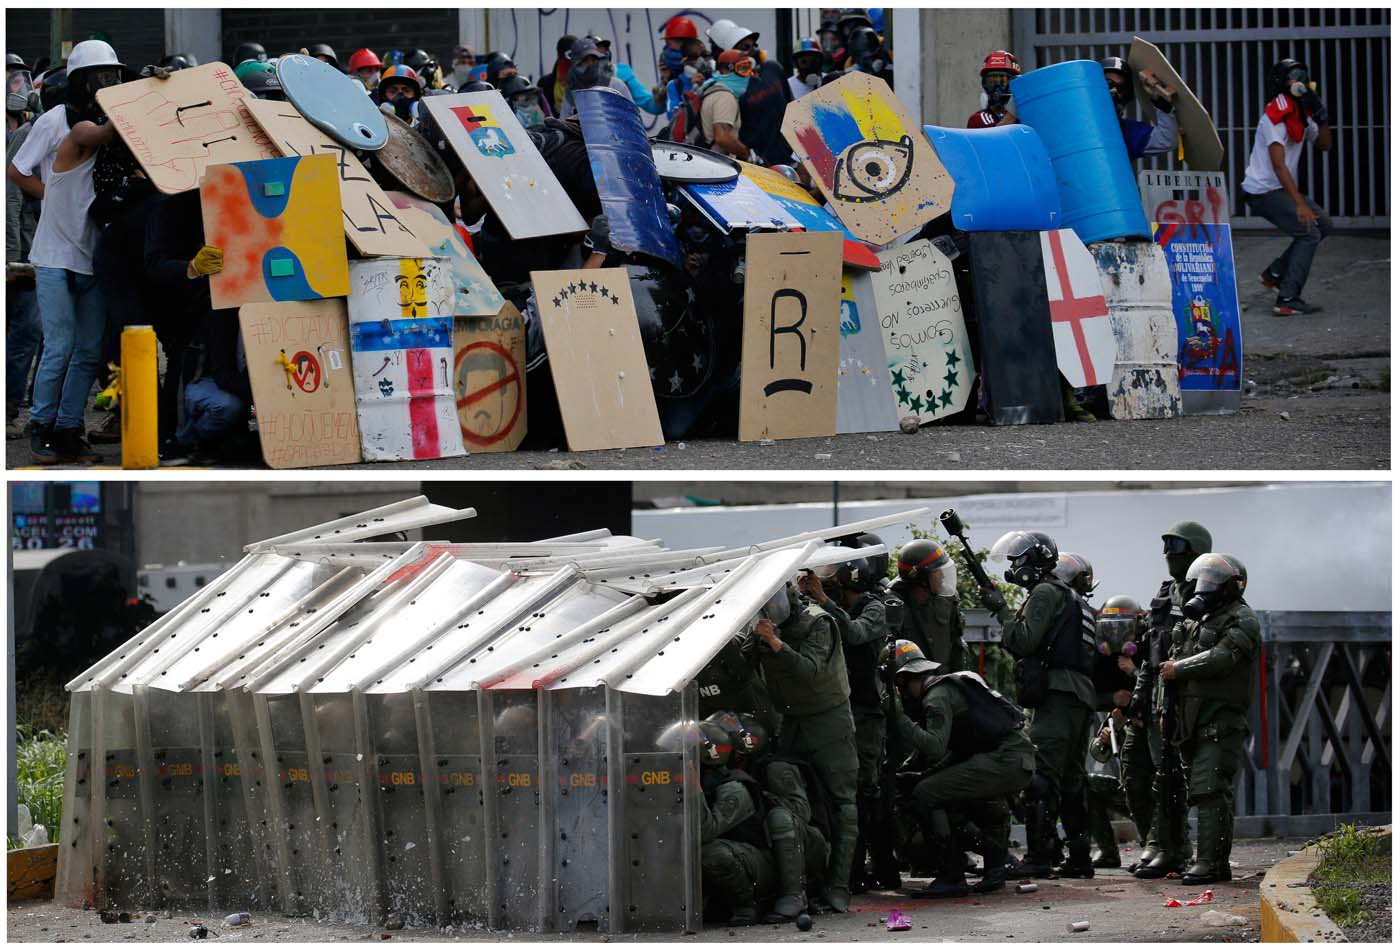 A combination picture shows demonstrators using shields to confront the Venezuelan National Guard (top) and members of Venezuelan National Guard using shields to confront protesters rallying against Venezuela's President Nicolas Maduro in Caracas, Venezuela May 24, 2017.   REUTERS/Carlos Barria